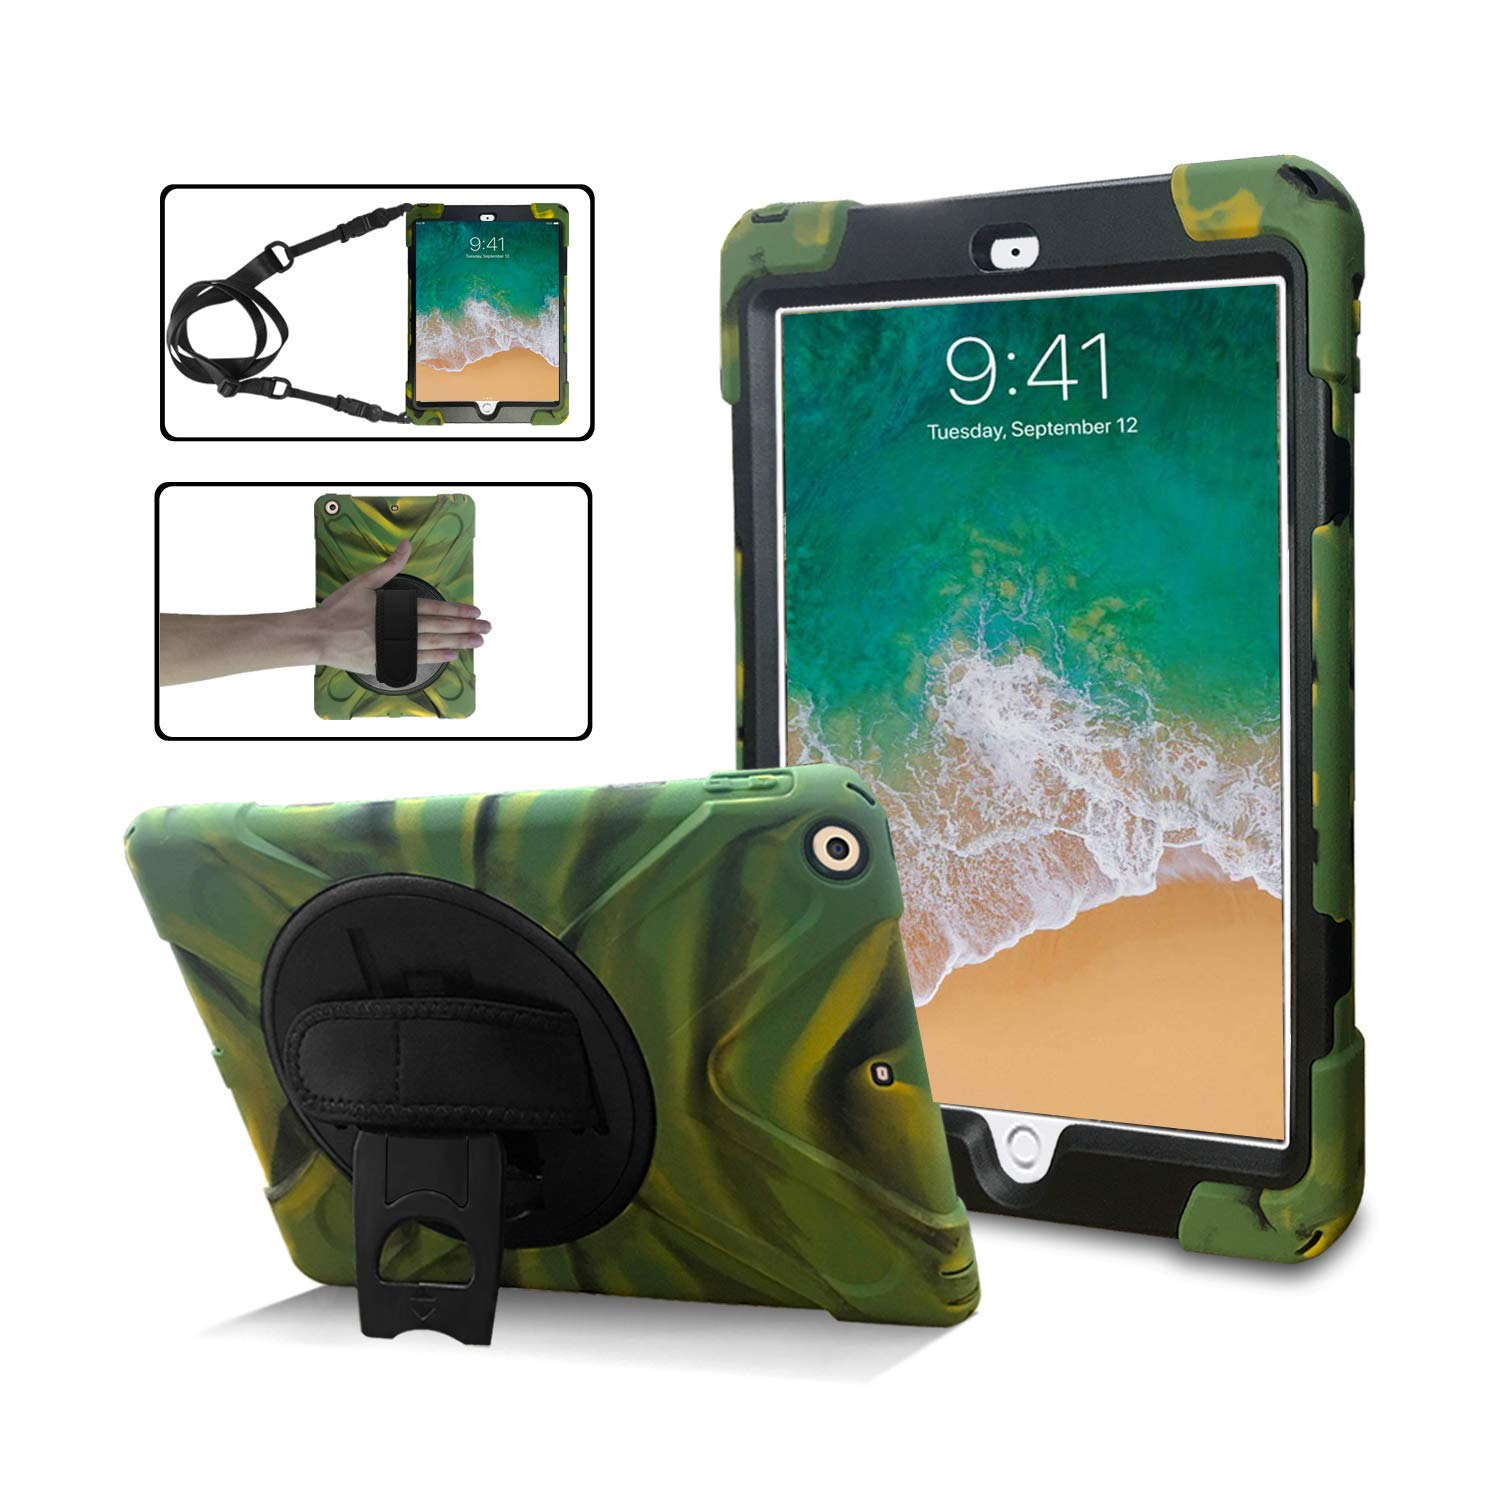 iPad 6th/5th Generation Cases with Strap,TSQ Heavy Duty Shockproof Durable Hard Rugged Protective Case with Handle Hand Strap/Stand/Shoulder Strap for iPad 9.7 Inch A1893/A1954/A1822/A1823,Camouflage